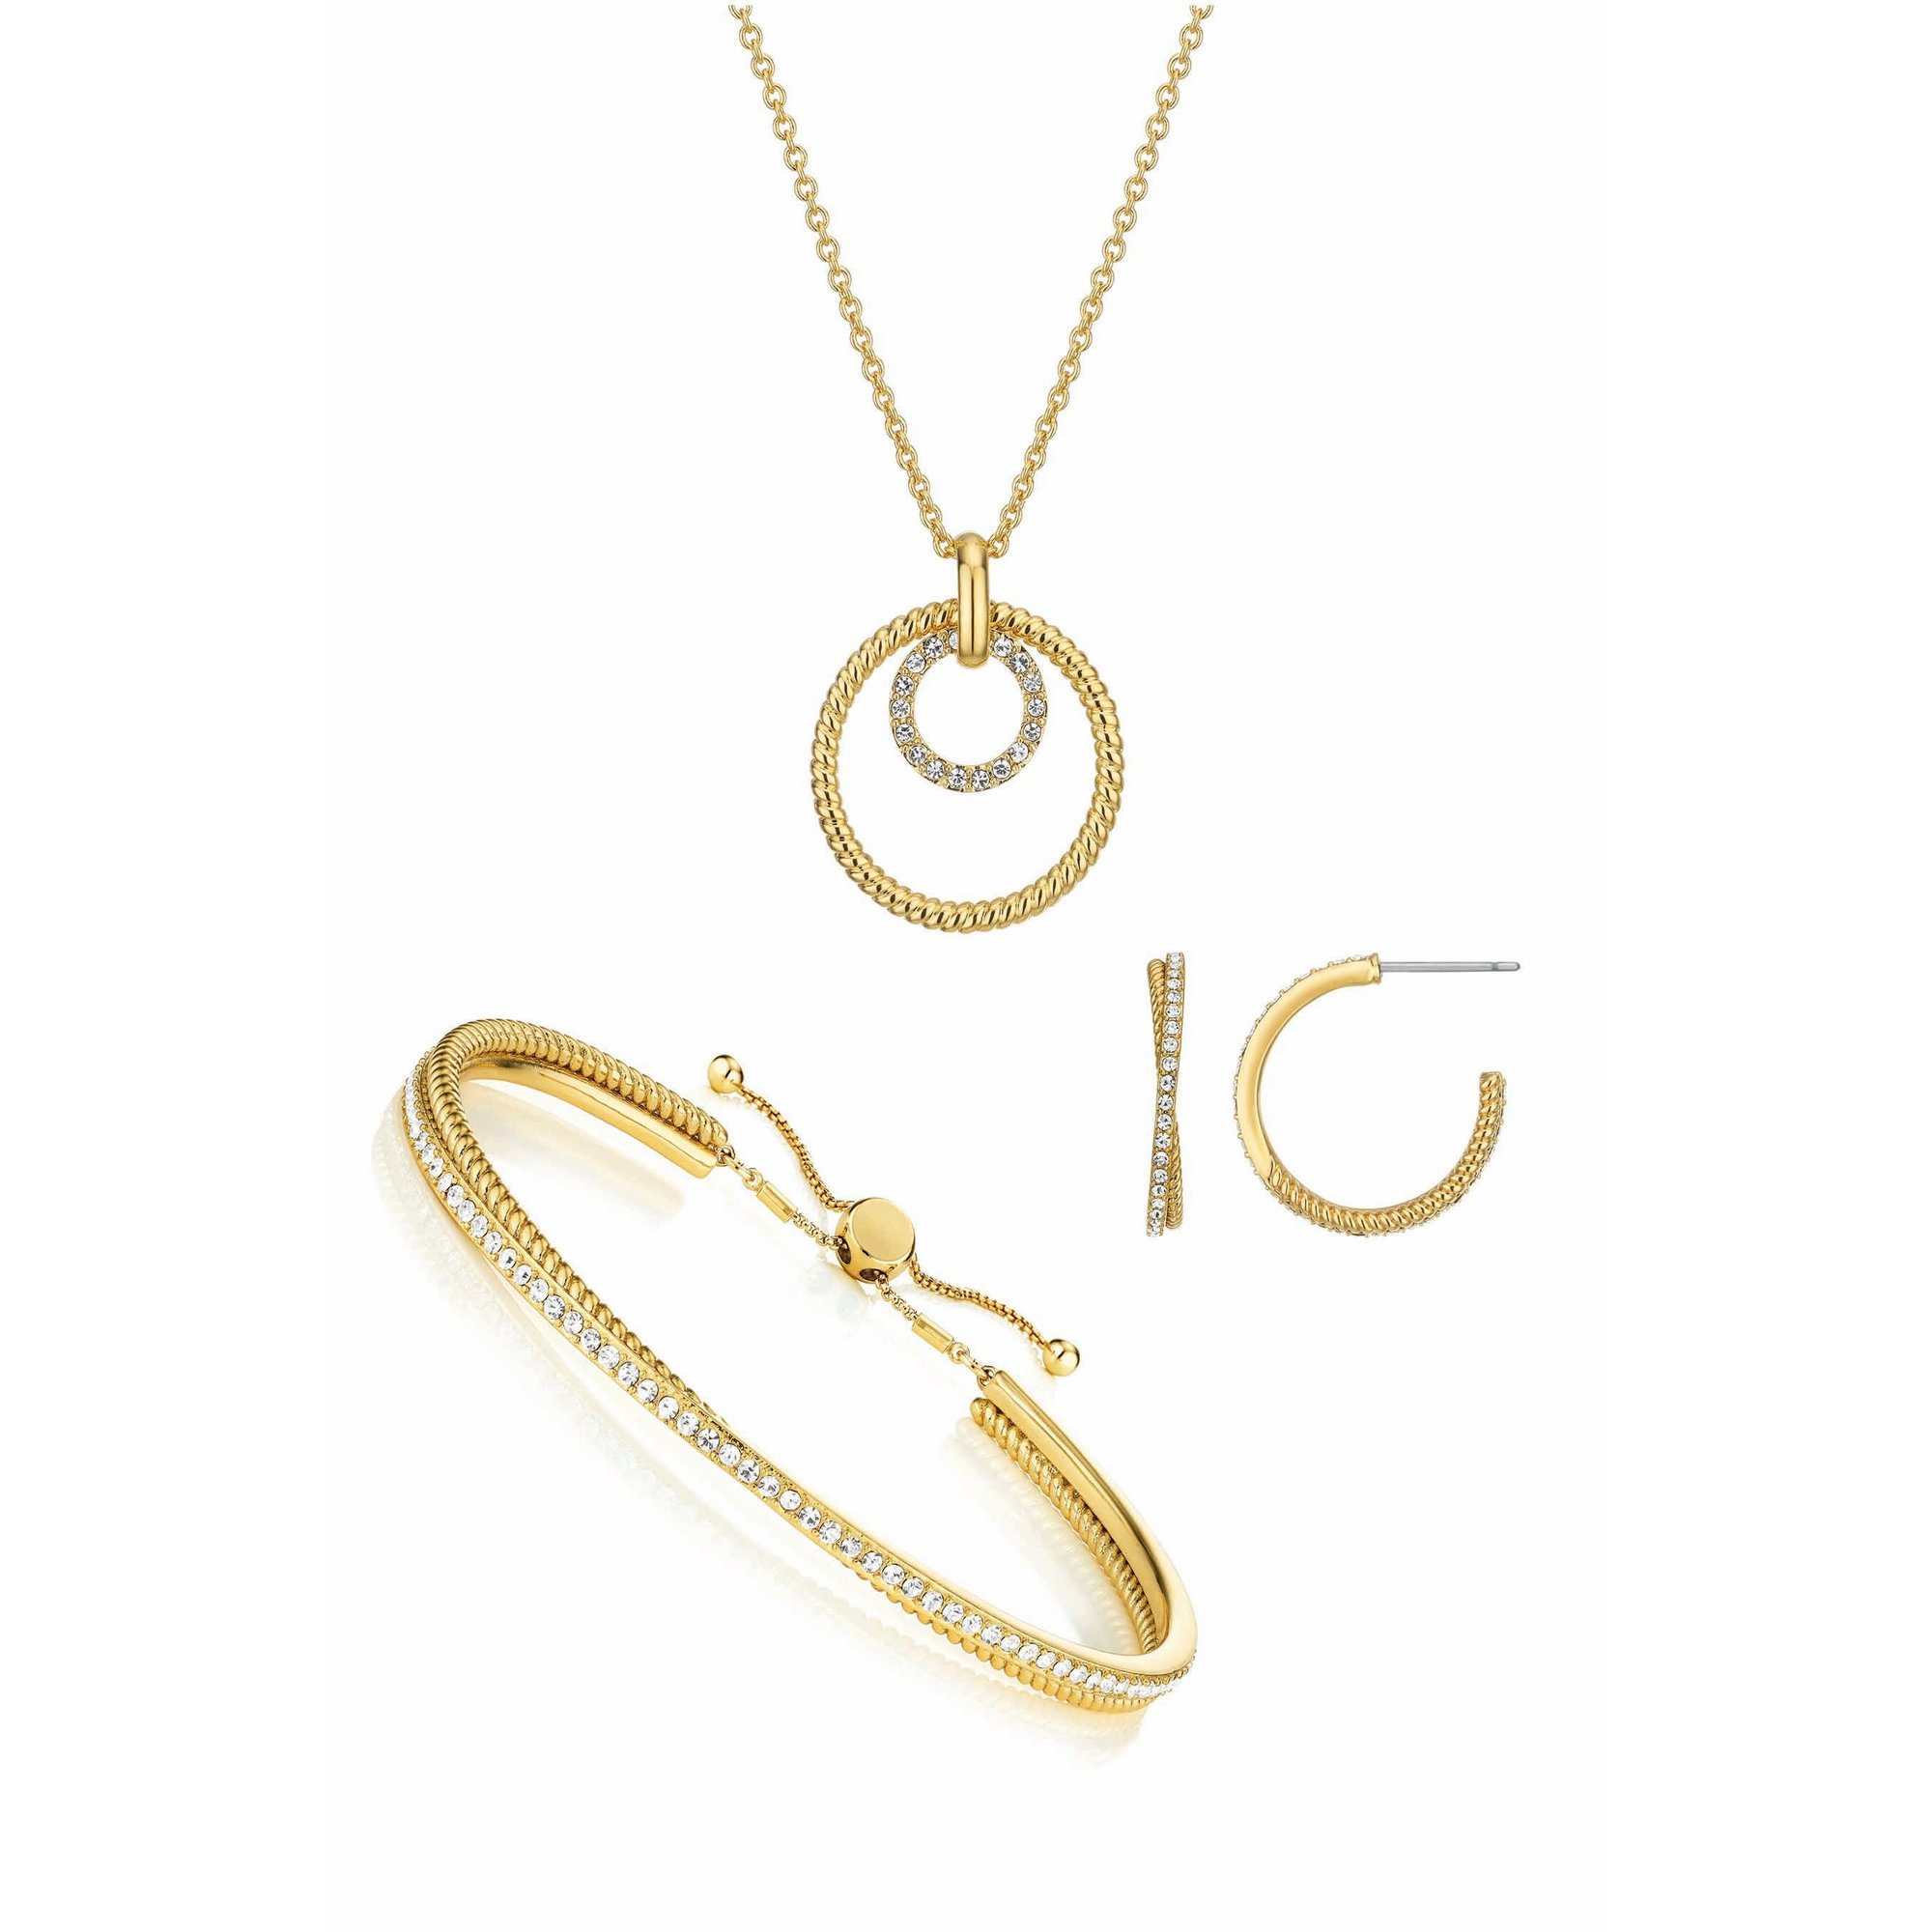 Image of Buckley London Cleo Earring Pendant and Friendship Bangle Set